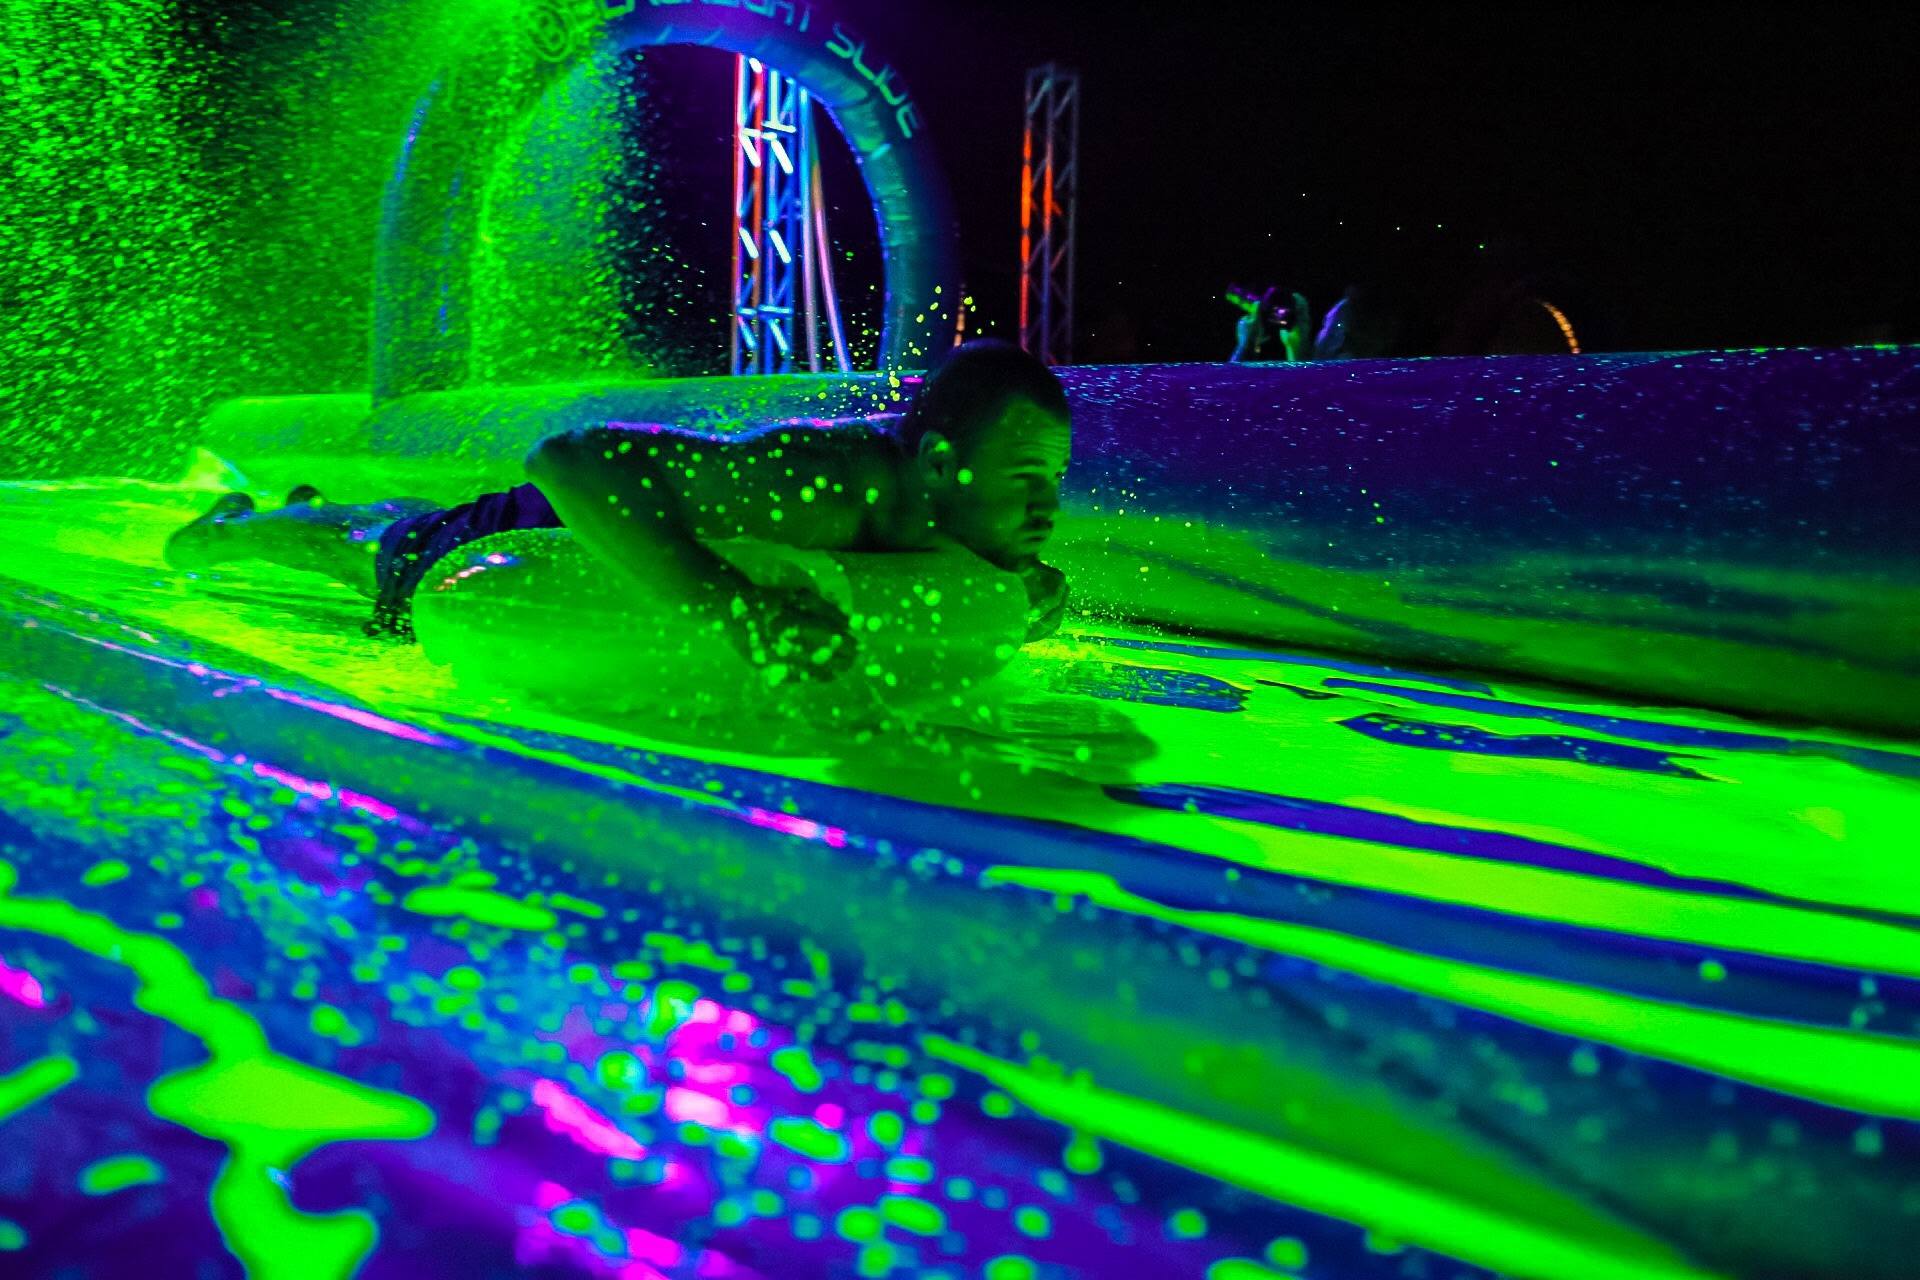 blacklight slide party comes to raley field  u2022 sept  9